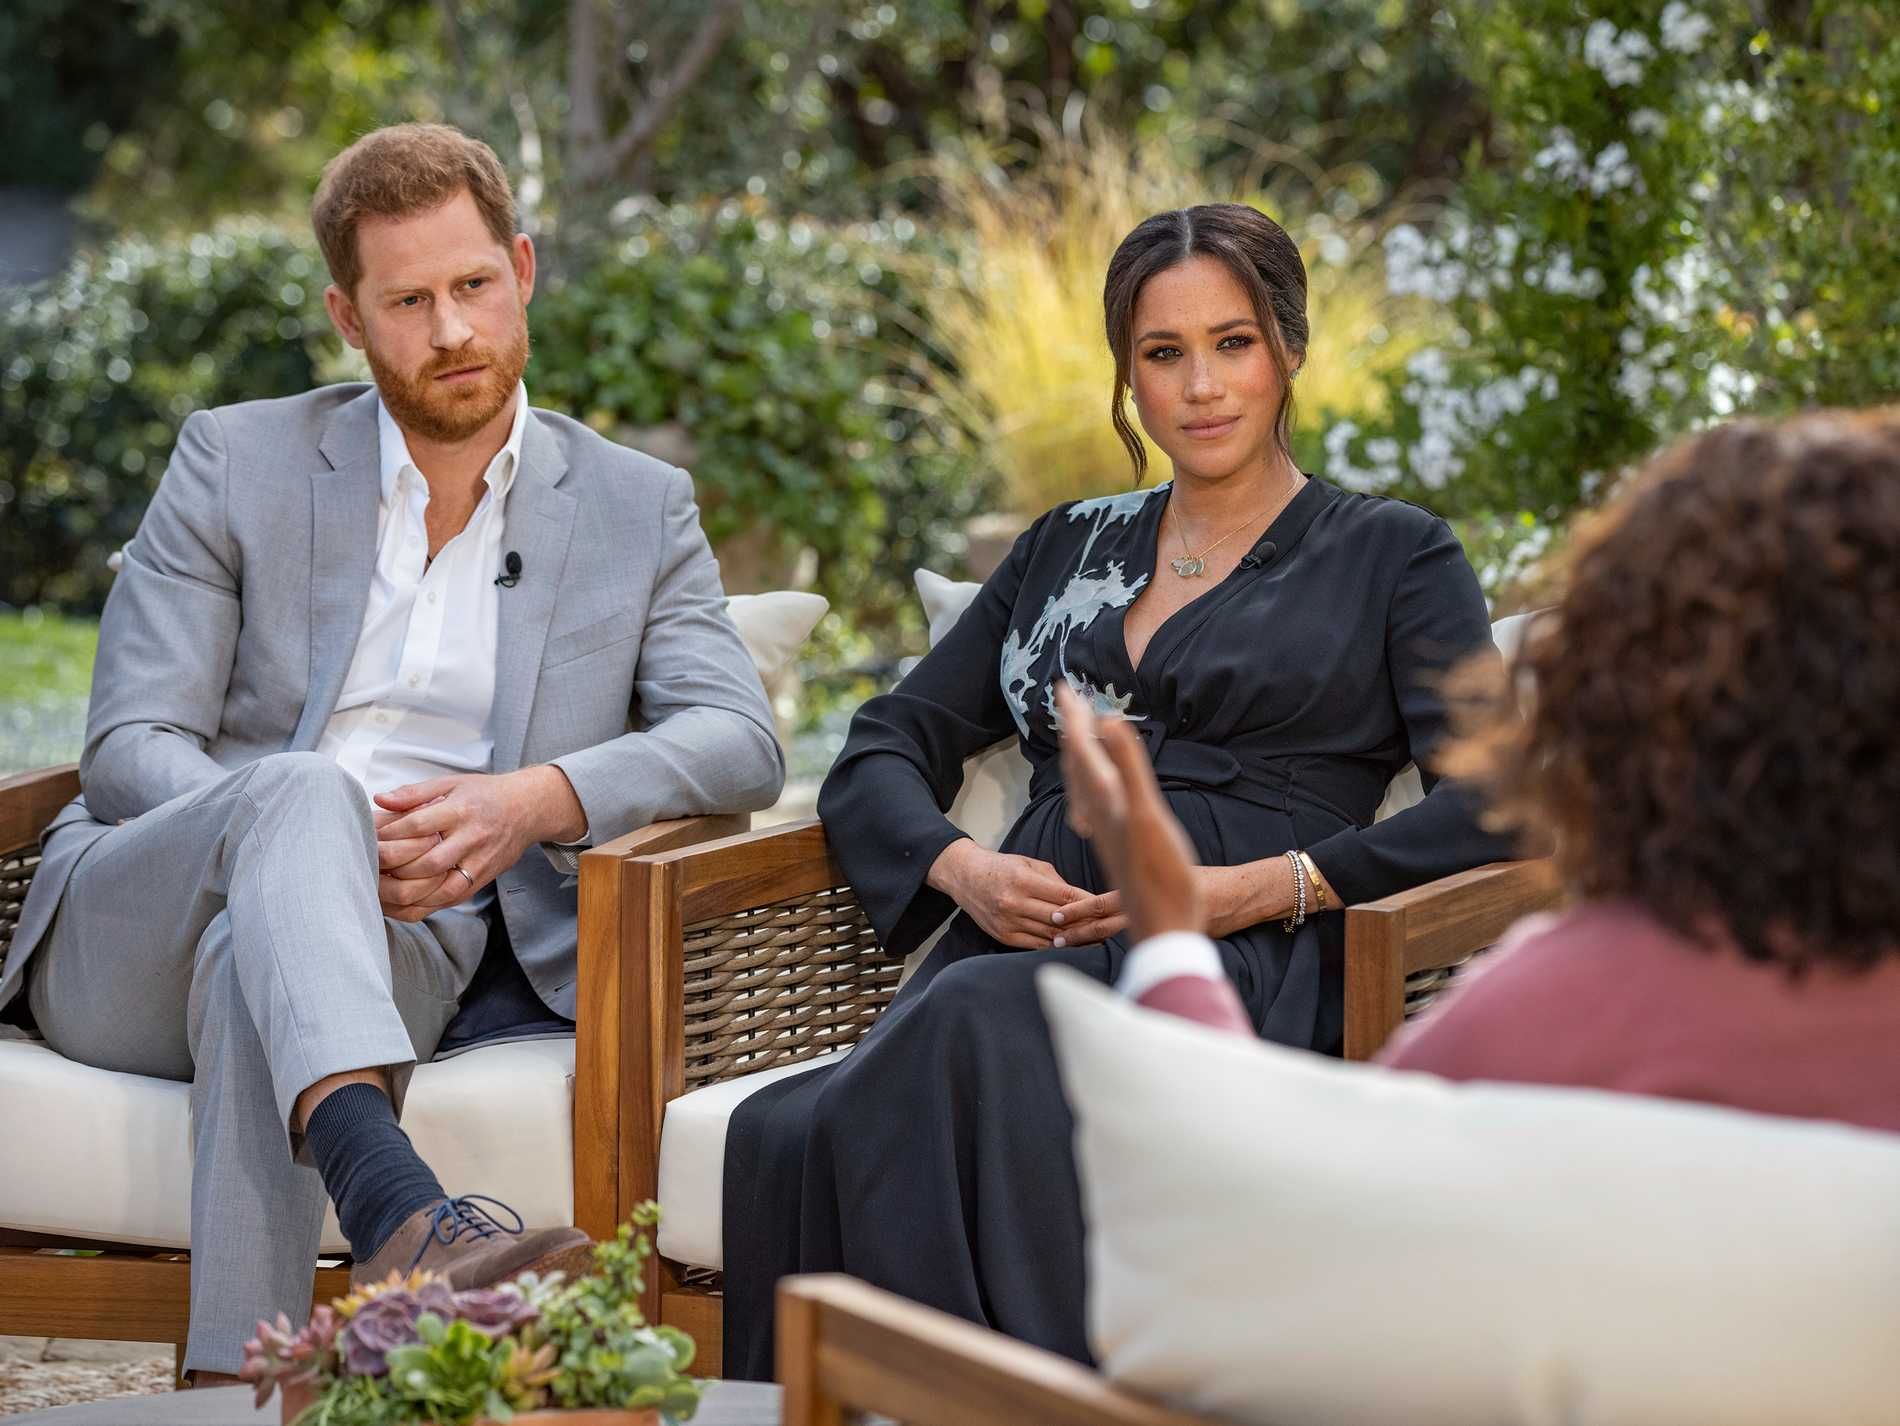 Oprah Winfrey's interview with Prince Harry and Meghan will be broadcast on Monday.